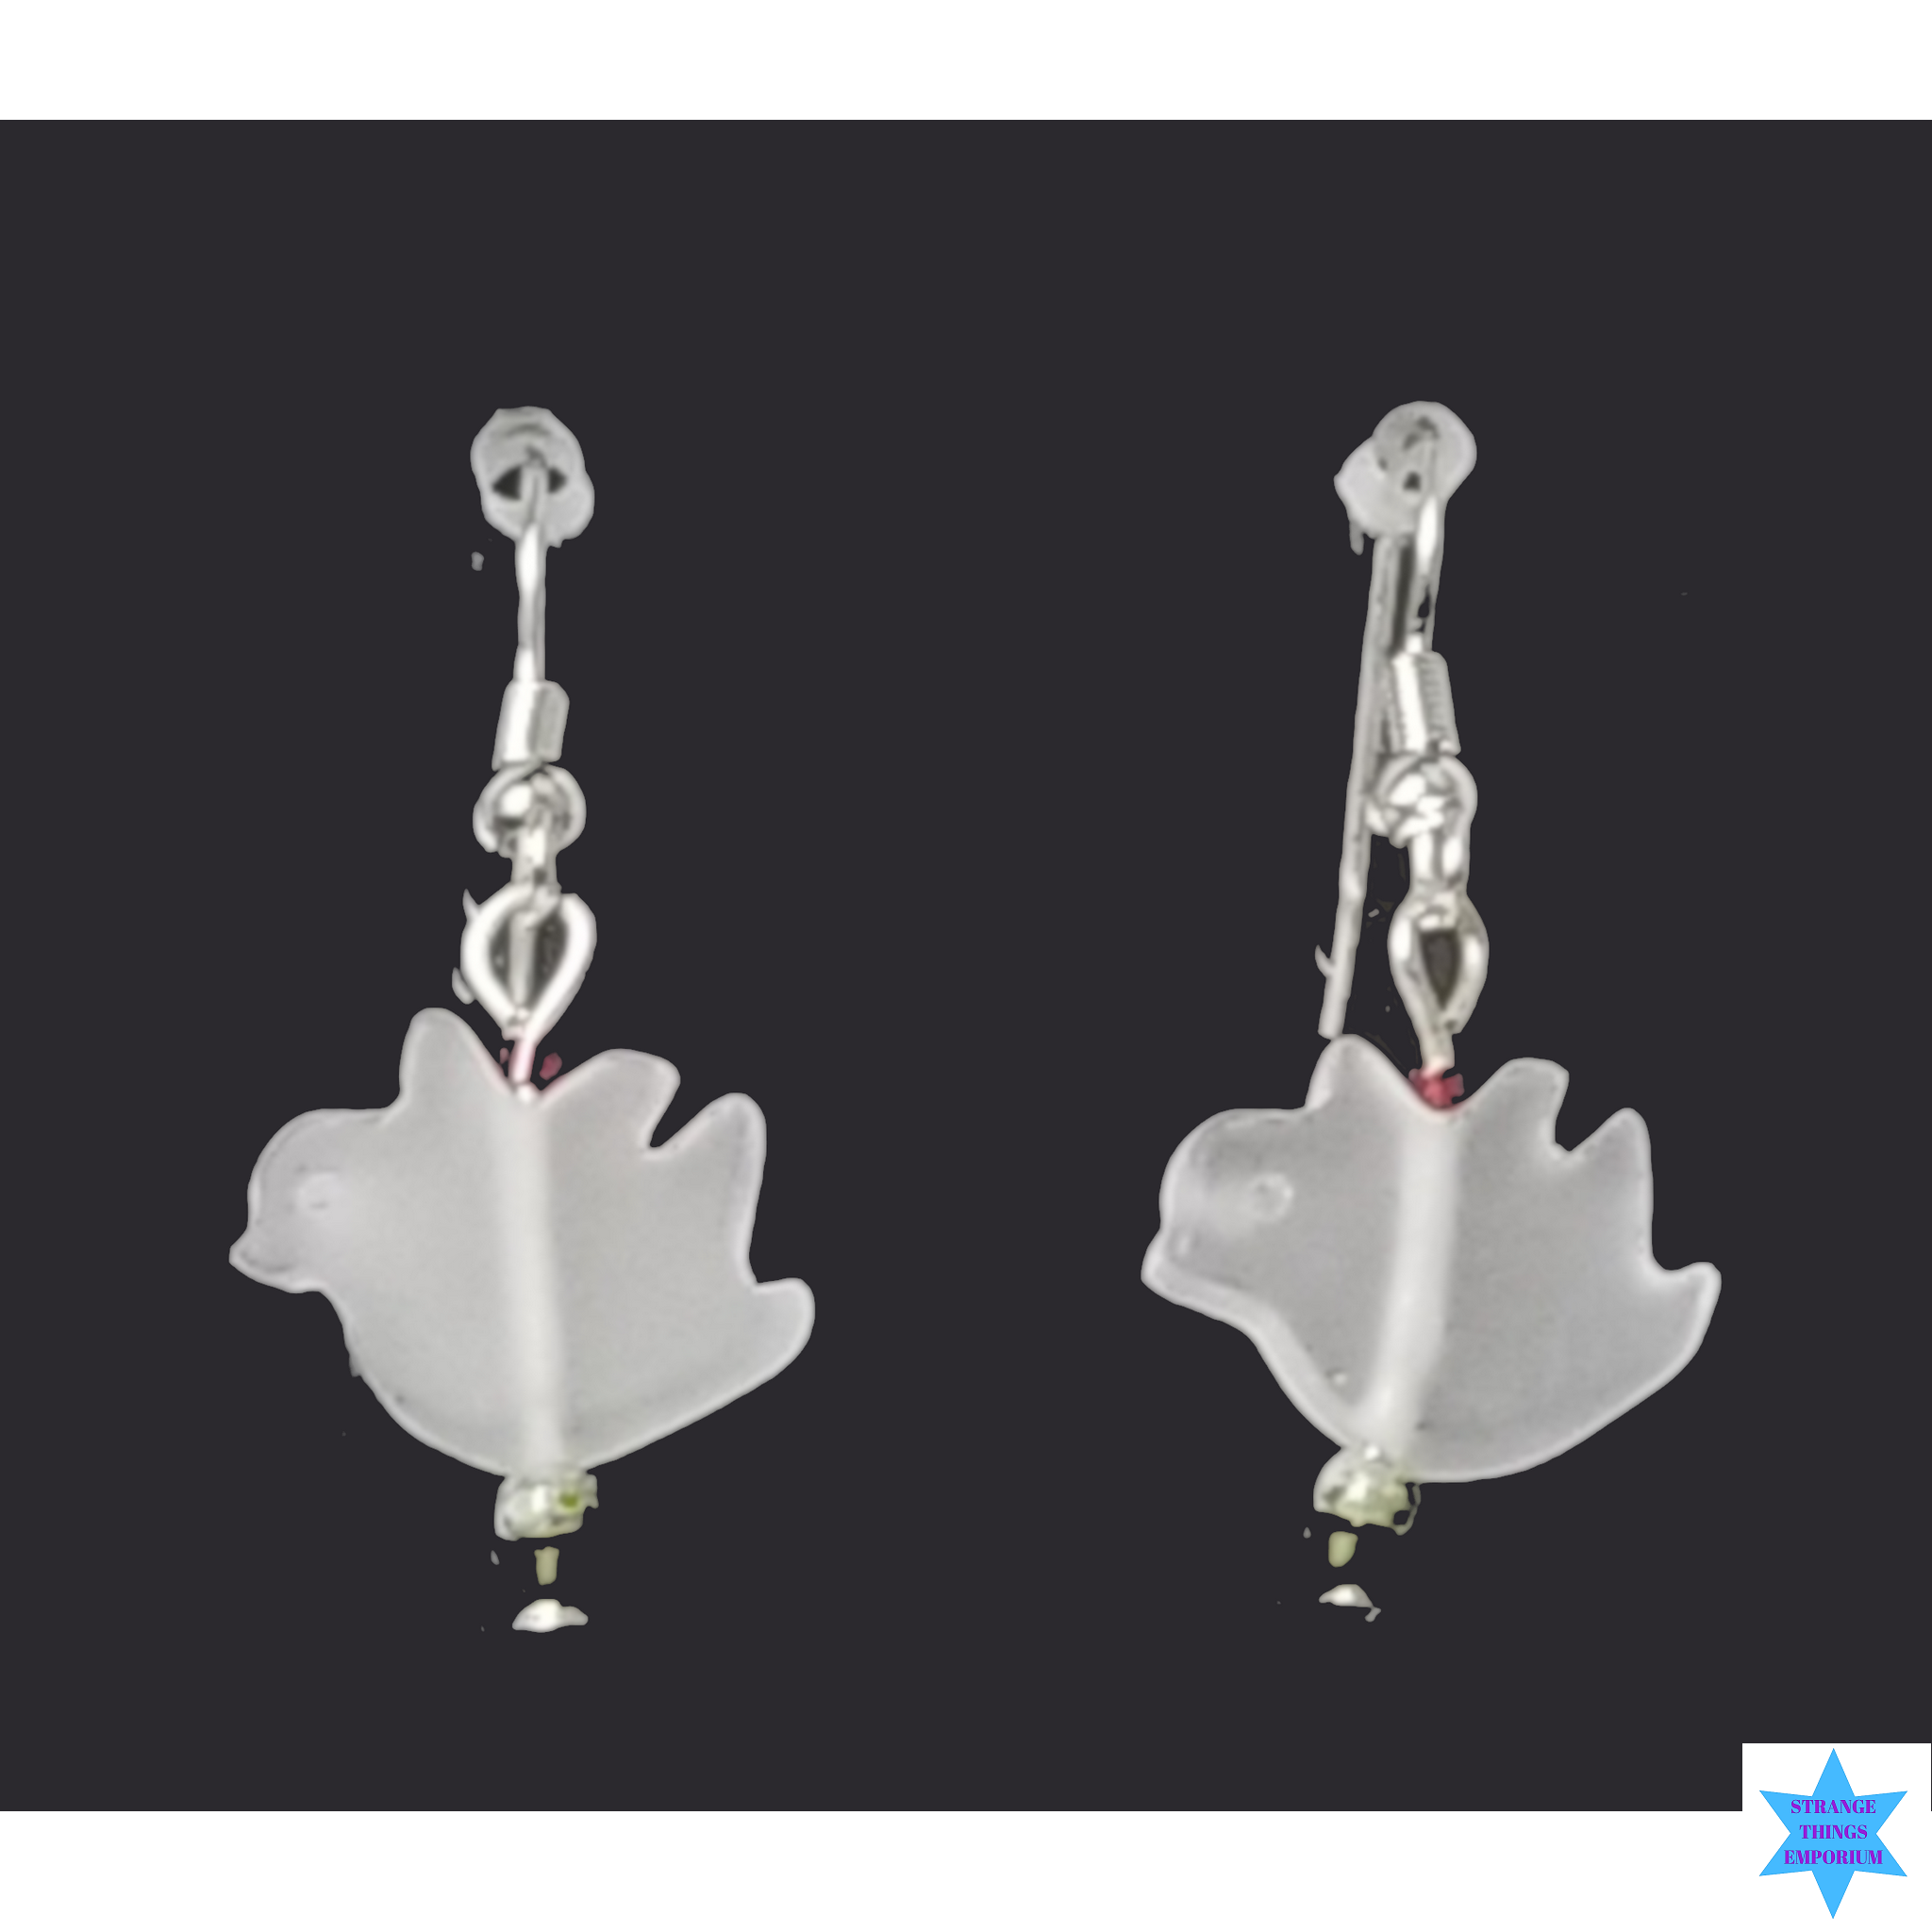 Twitter Bird Earrings - Strange Things Emporium